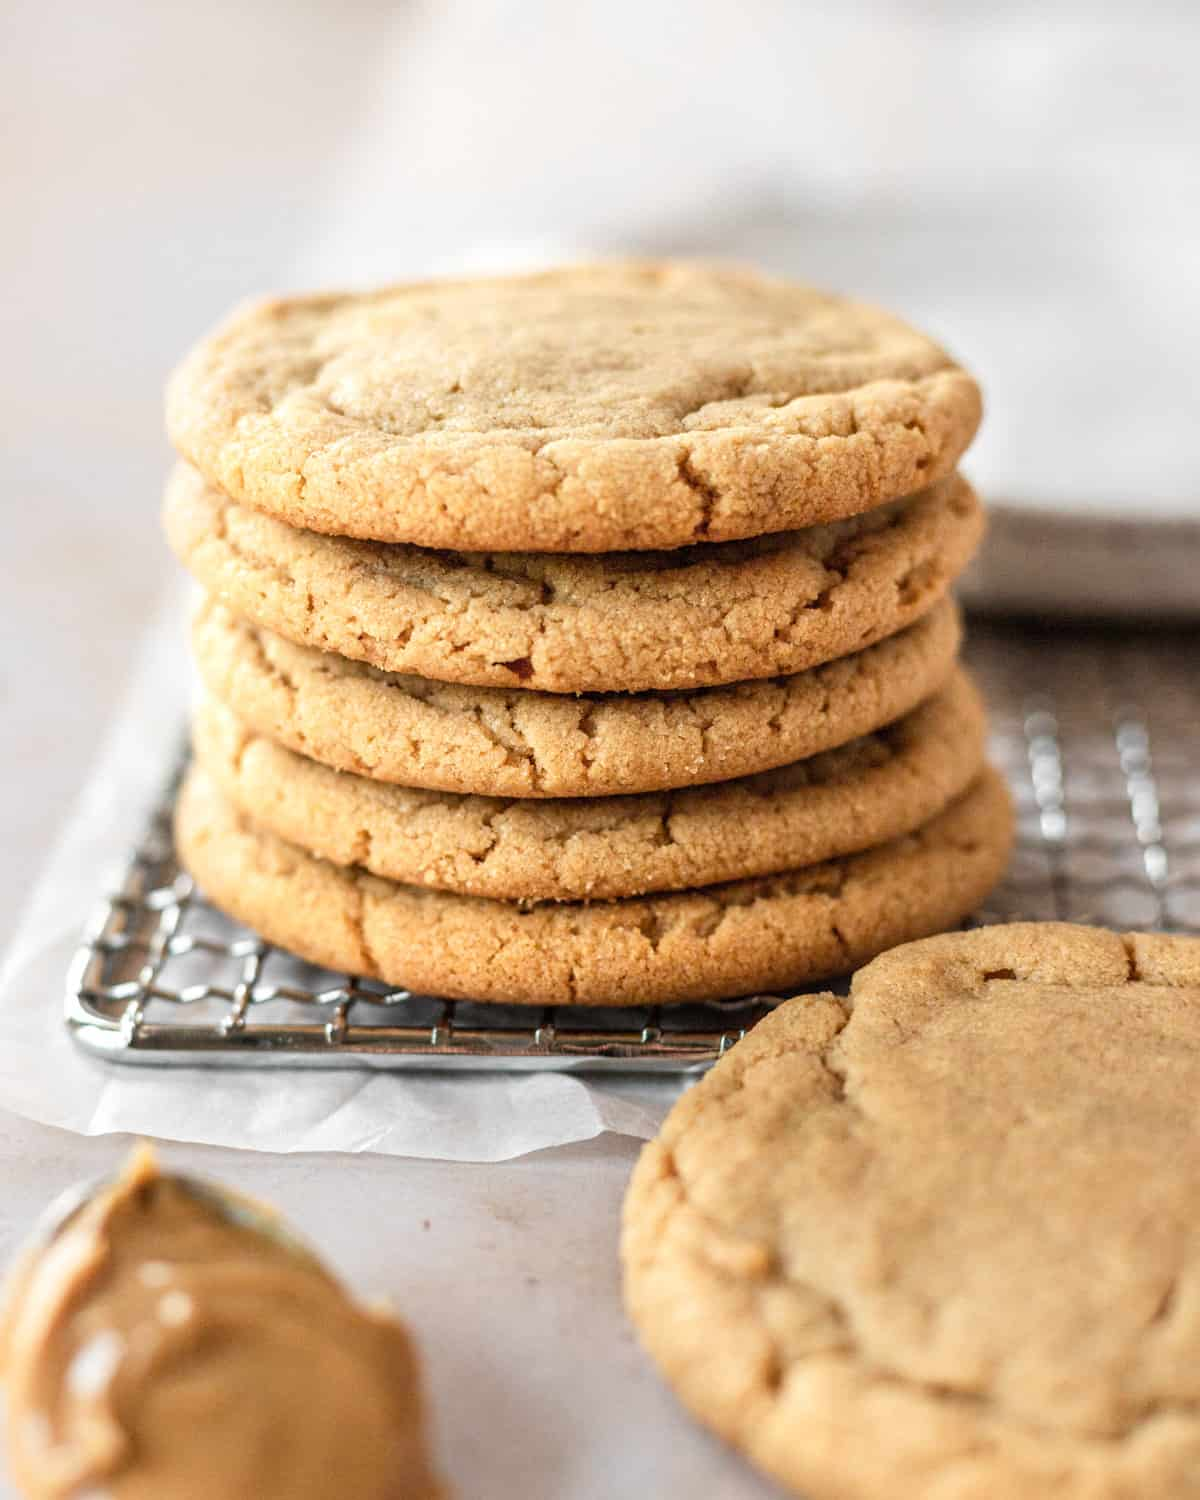 stack of 5 cookies with the 6th cookies down below near a spoonful of peanut butter